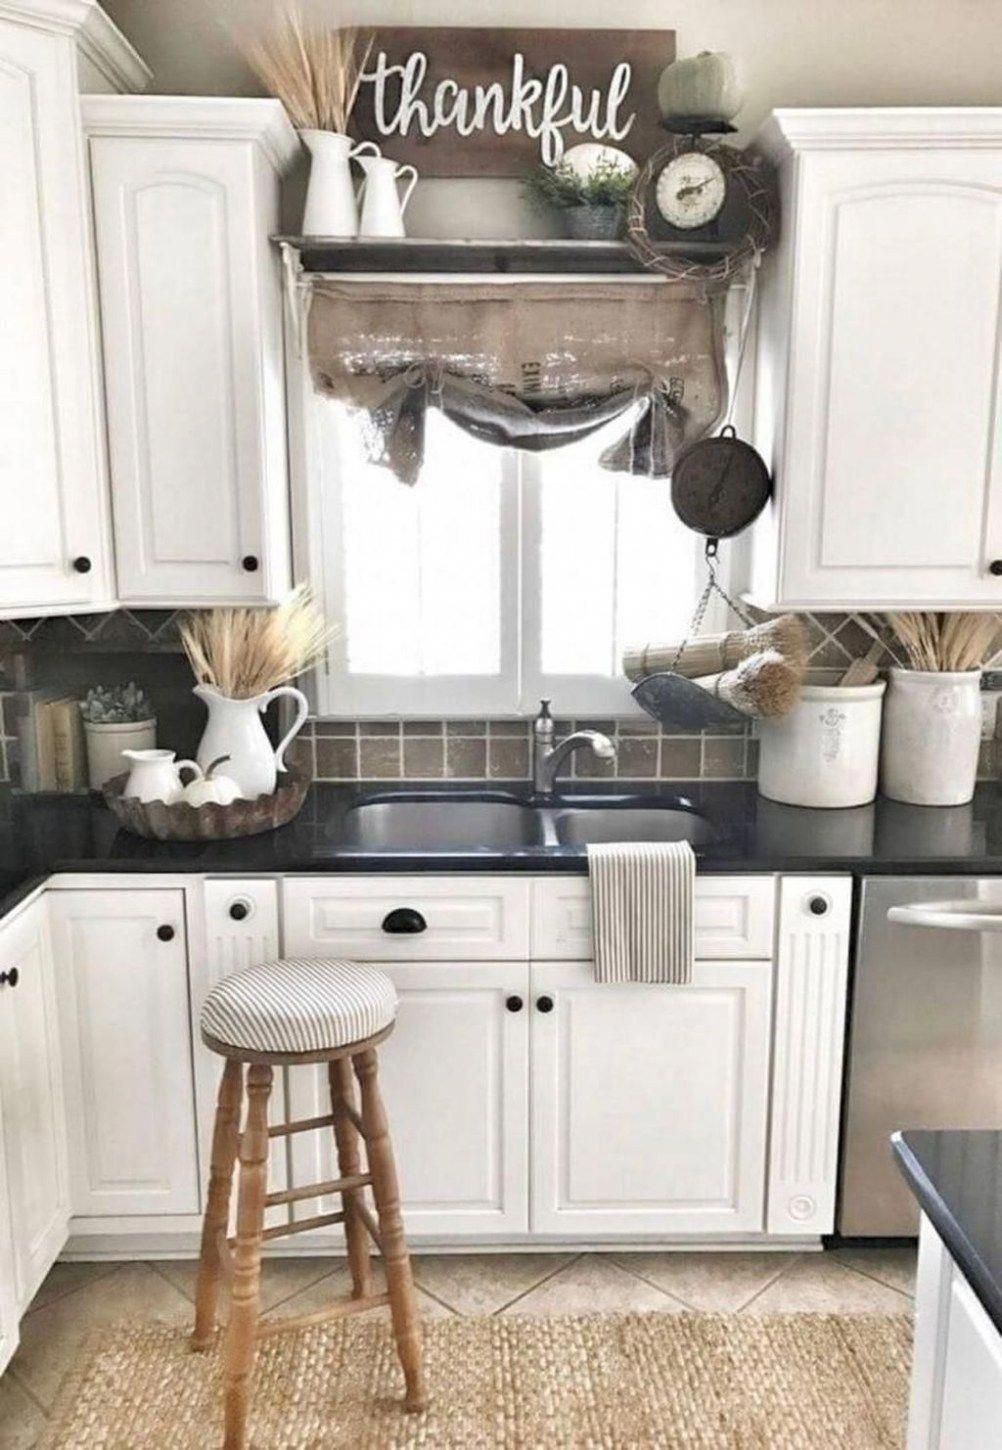 17 Stunning Kitchen Decoration Ideas With Rustic Farmhouse Style